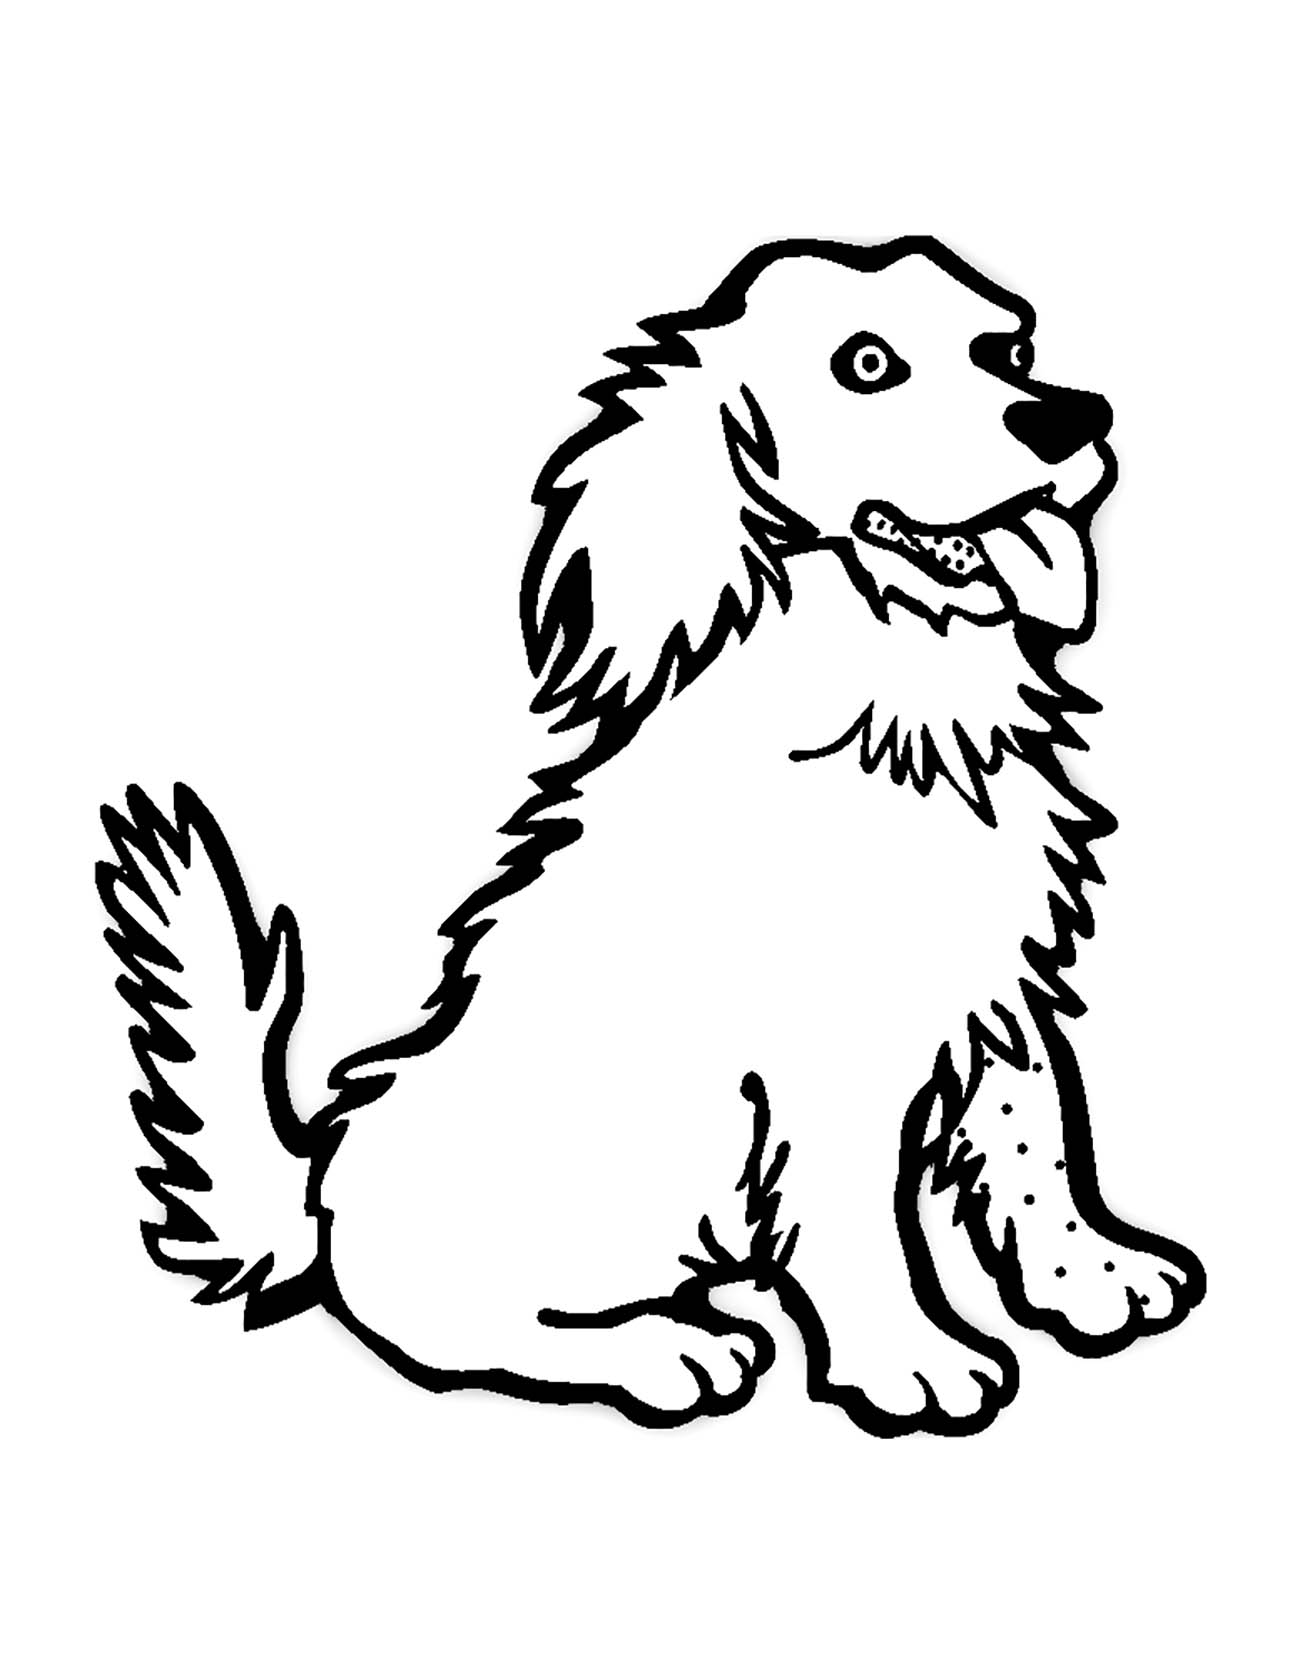 coloring dog for kids dog to color for children dogs kids coloring pages kids dog for coloring